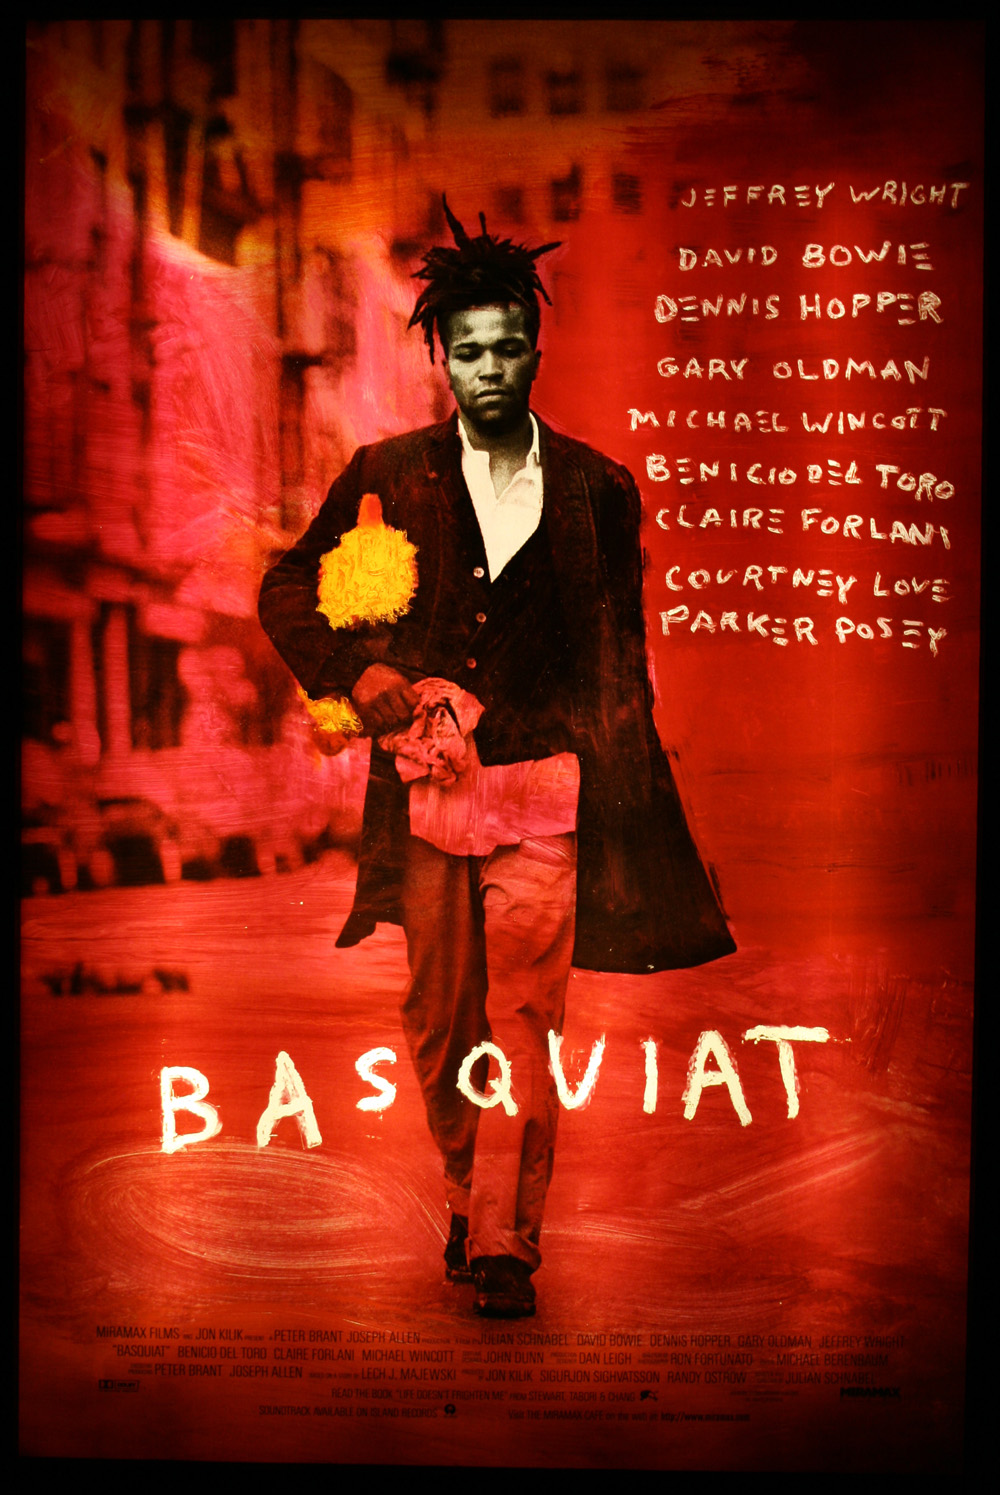 Basquiat-the-movie.jpg